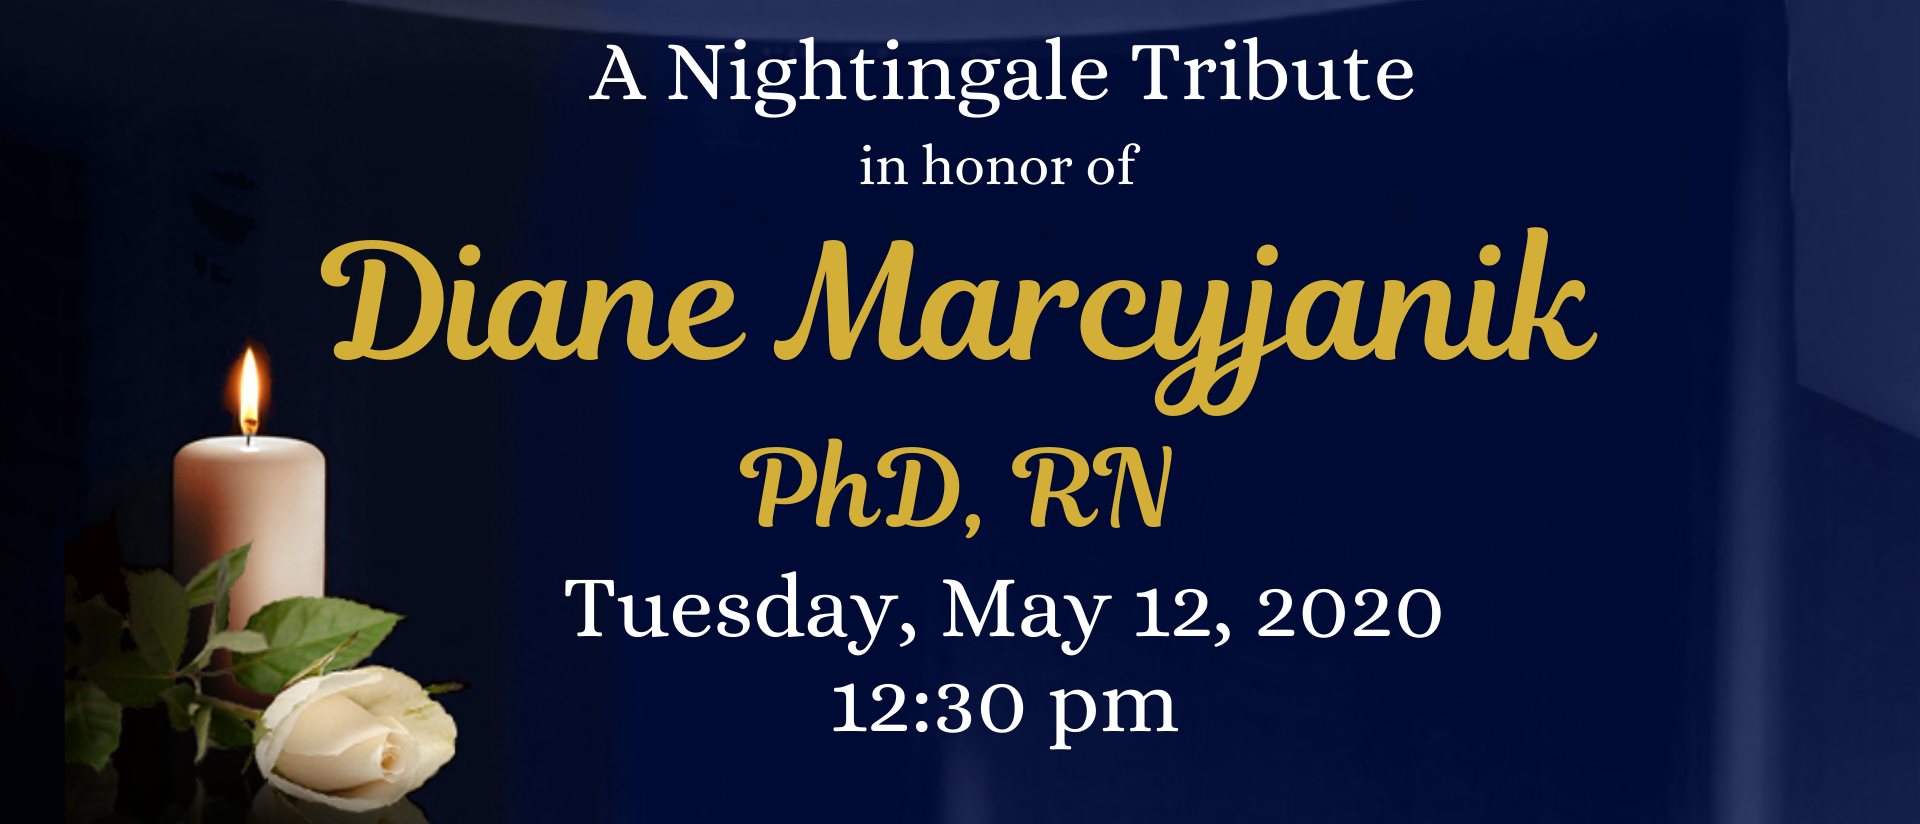 Nightingale Tribute for Diane Marcyjanik